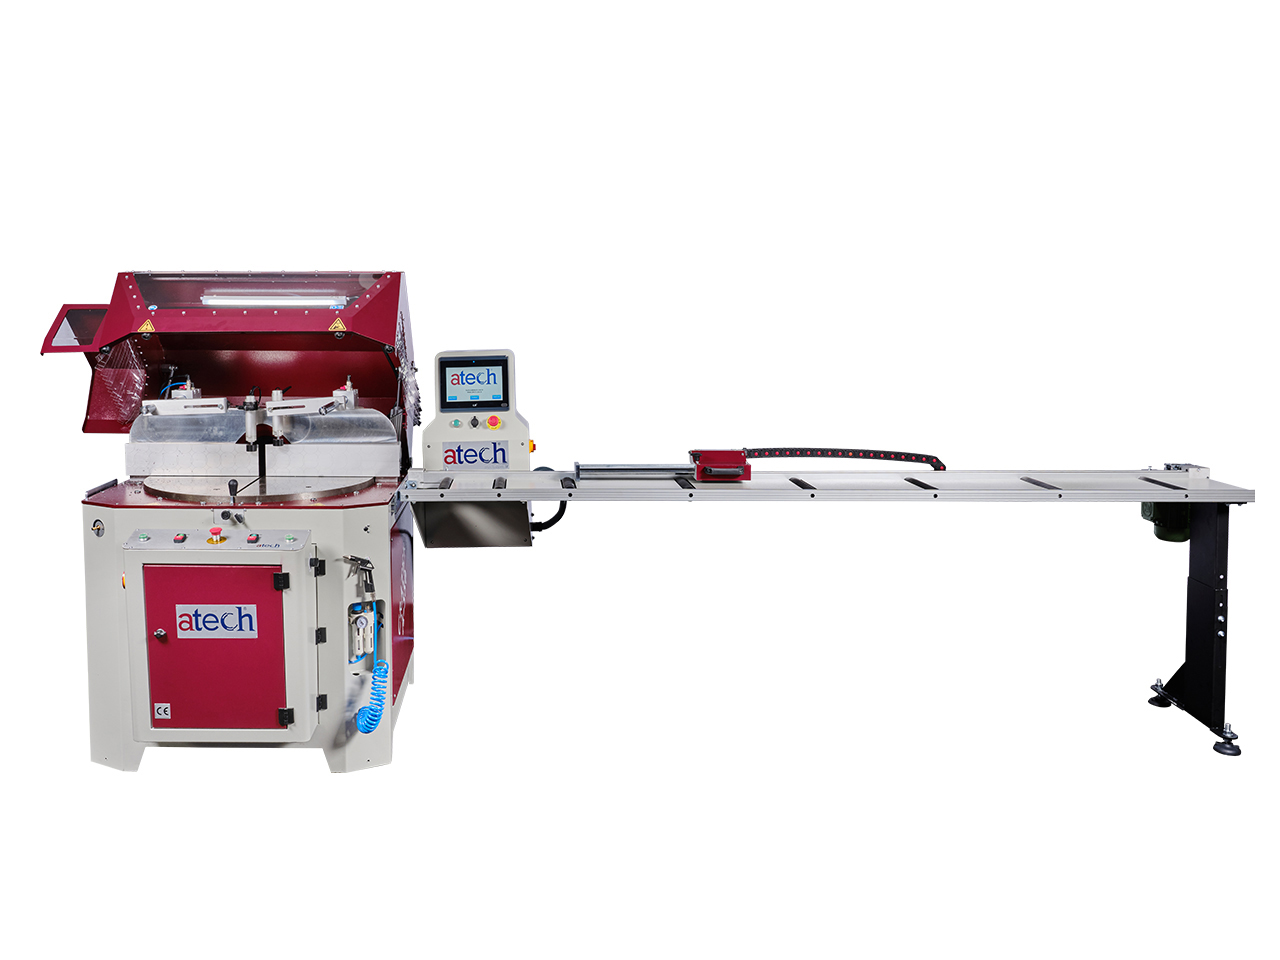 CRATER-06 A550 is a heavy duty 22 (550 mm) automatic aluminium profile upcut miter saw (13)